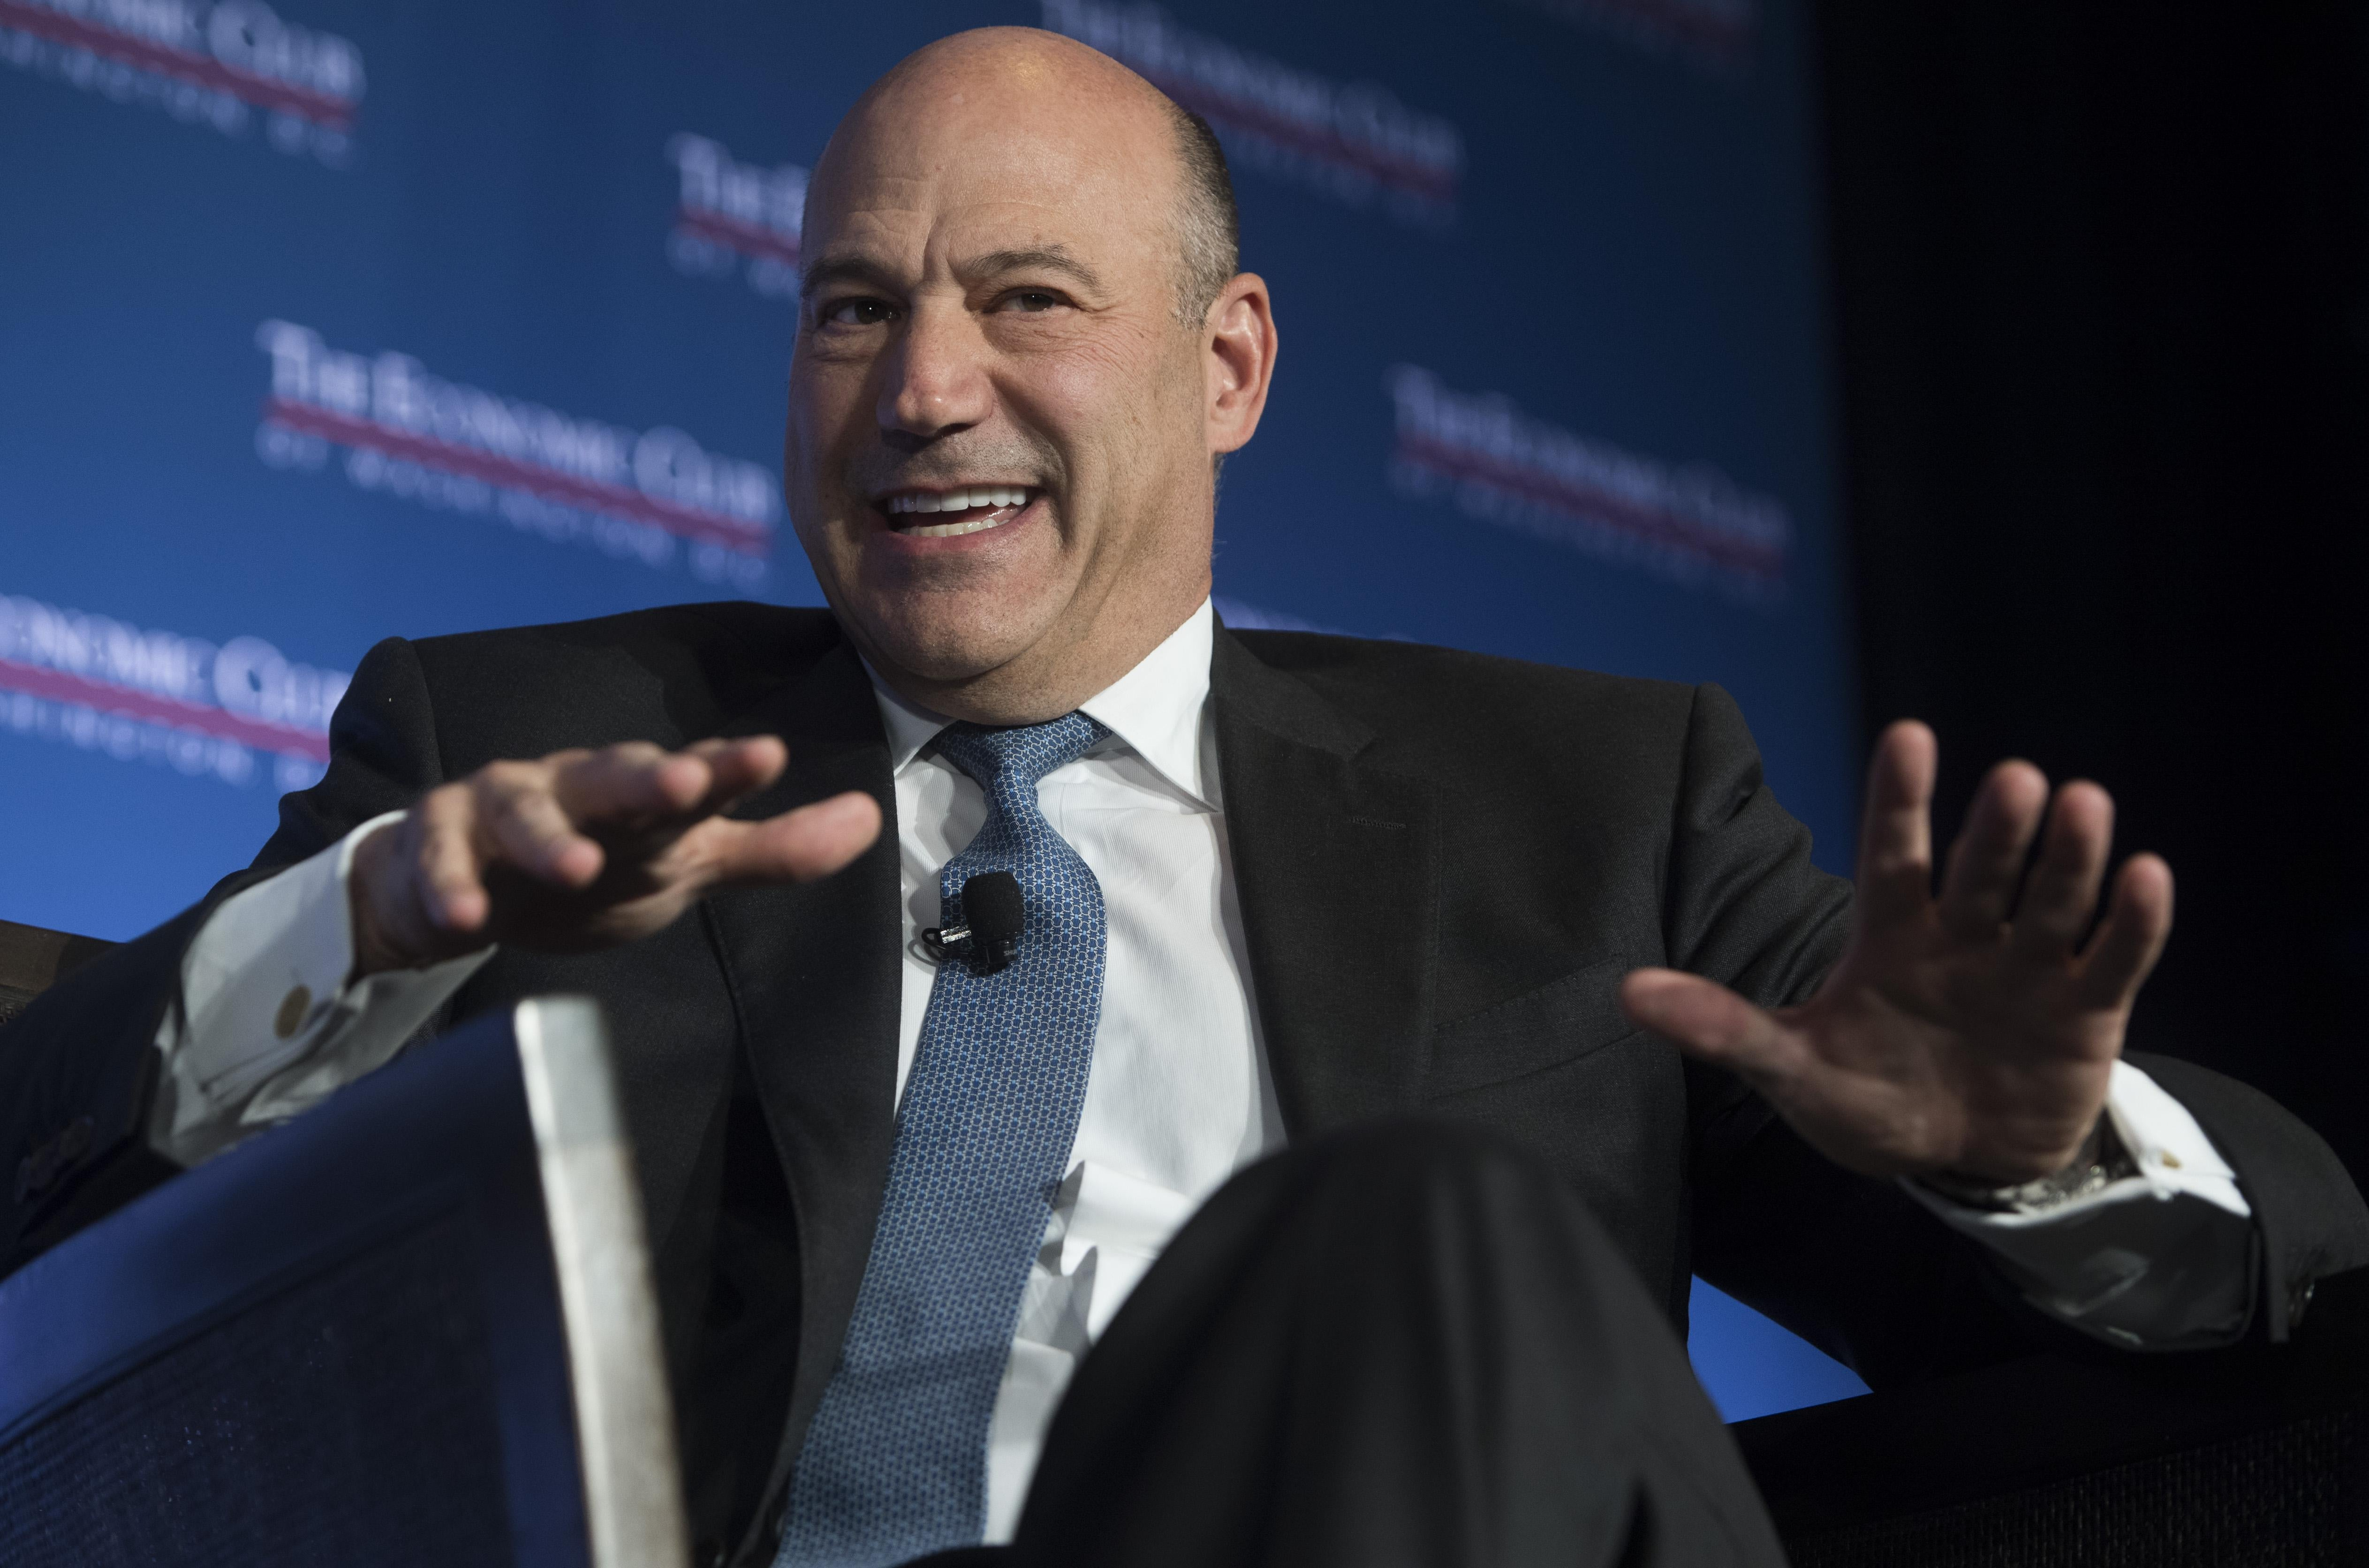 Gary Cohn, director of the National Economic Council, speaks about tax reform to the Economic Club of Washington in Washington, DC, November 2, 2017.